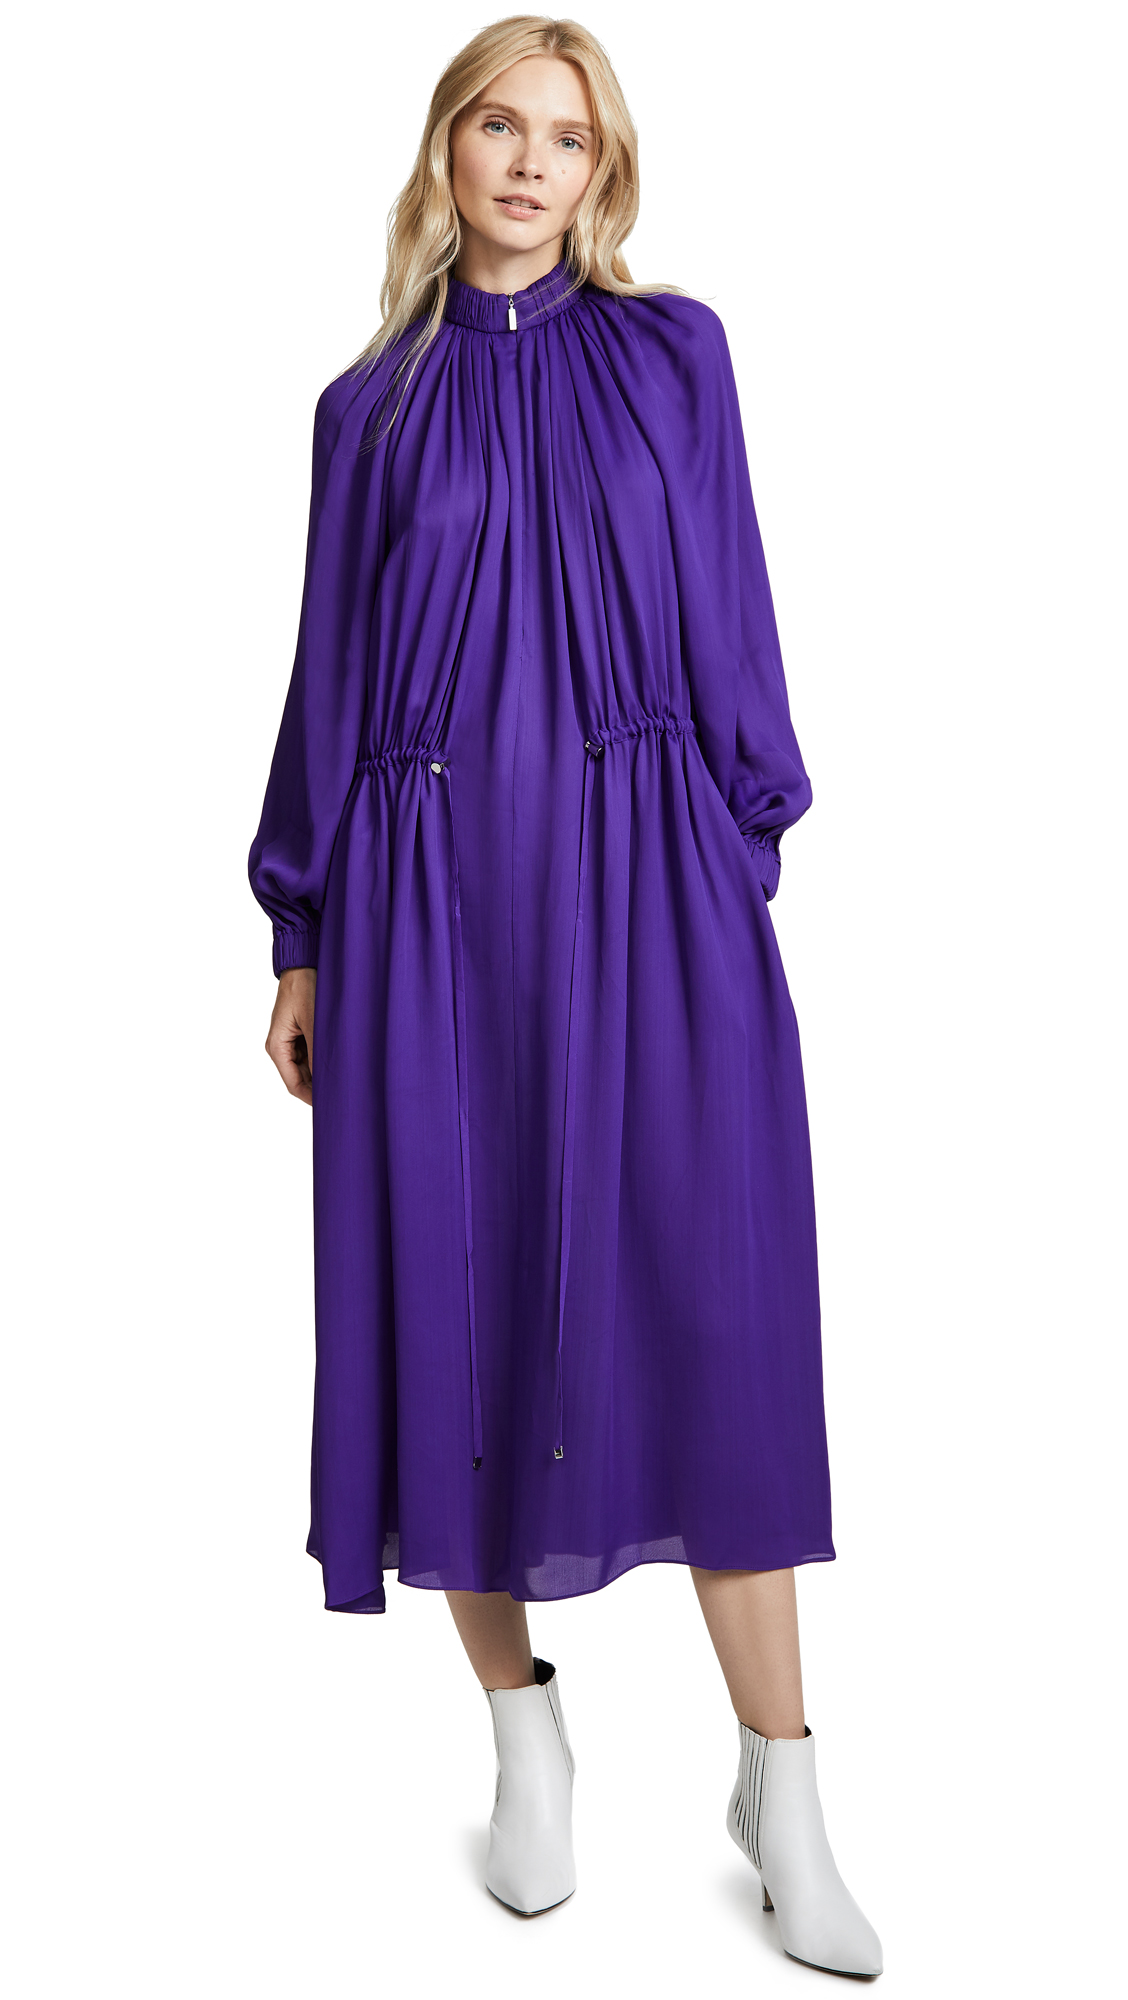 Tibi Drawstring Maxi Dress - Indigo Purple